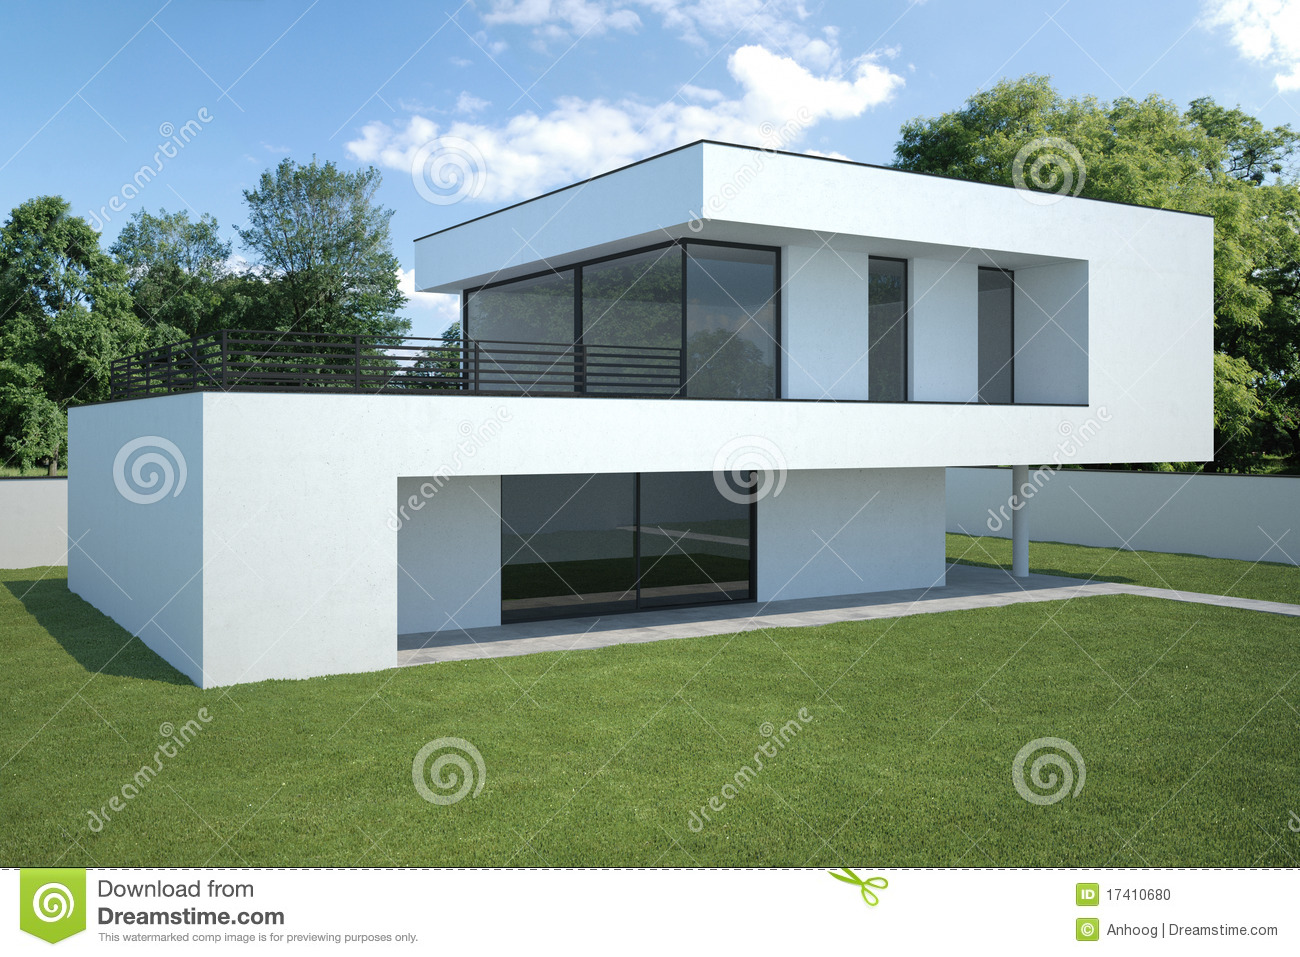 Maison moderne ext rieur avec la pelouse photo stock for Maison moderne 250m2